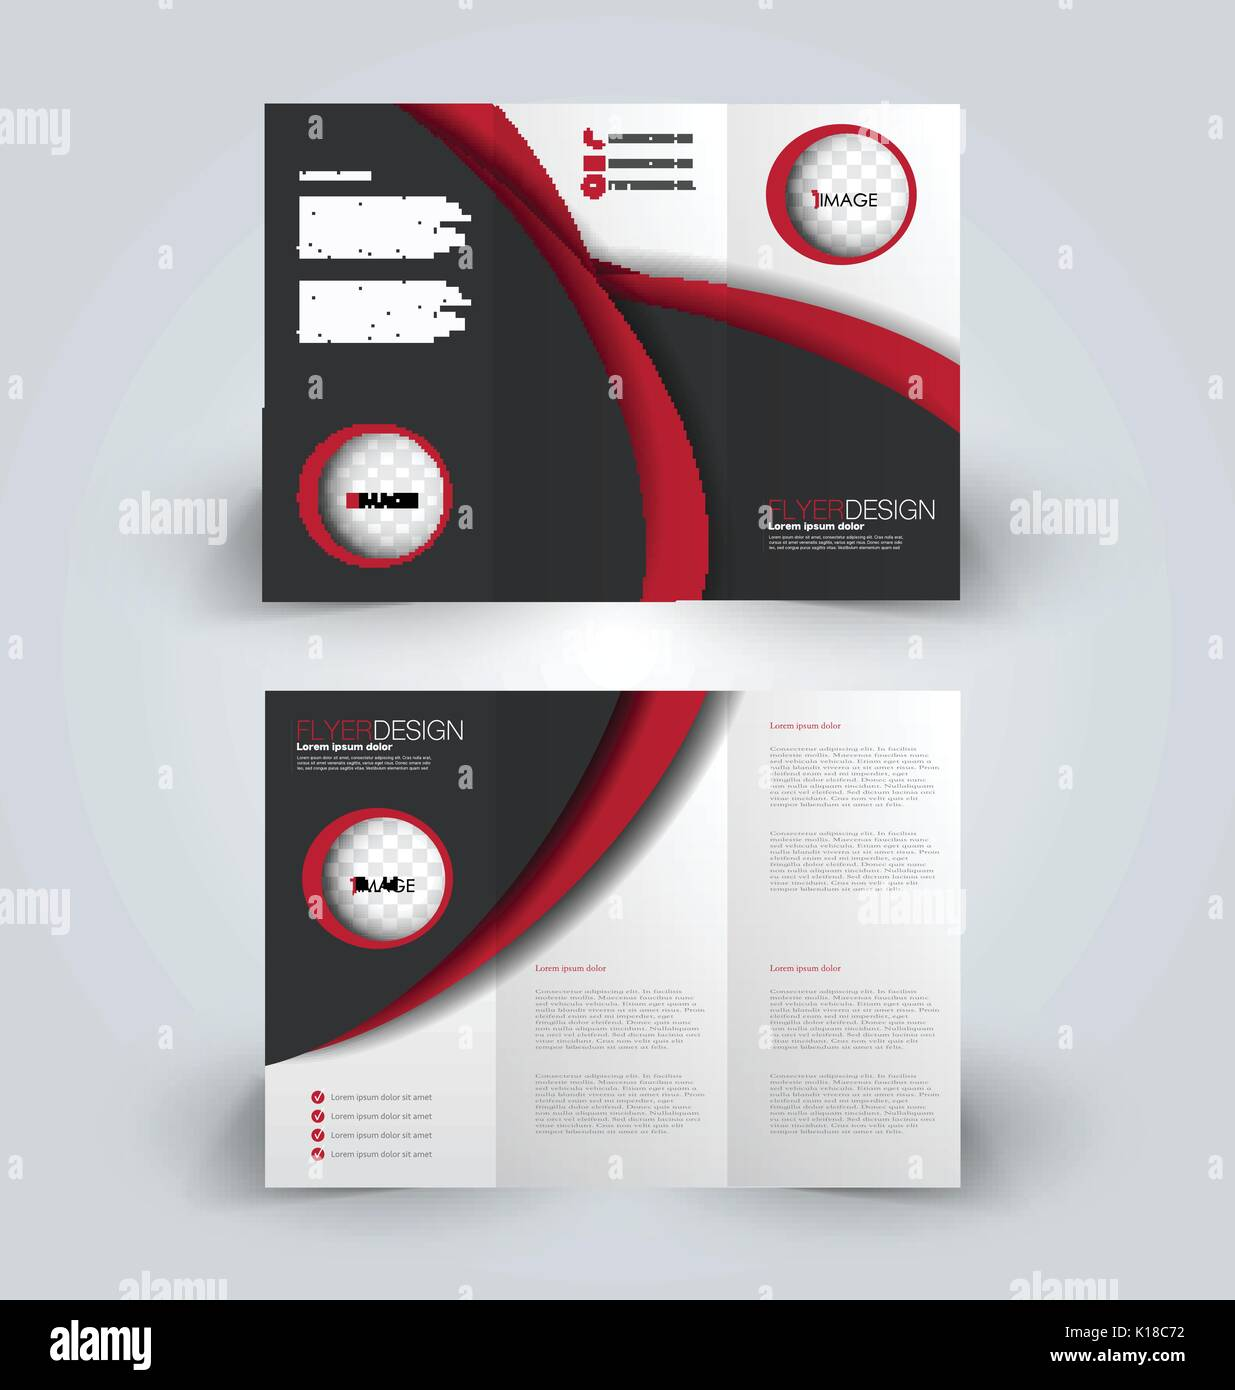 brochure tri fold design template for business education stock